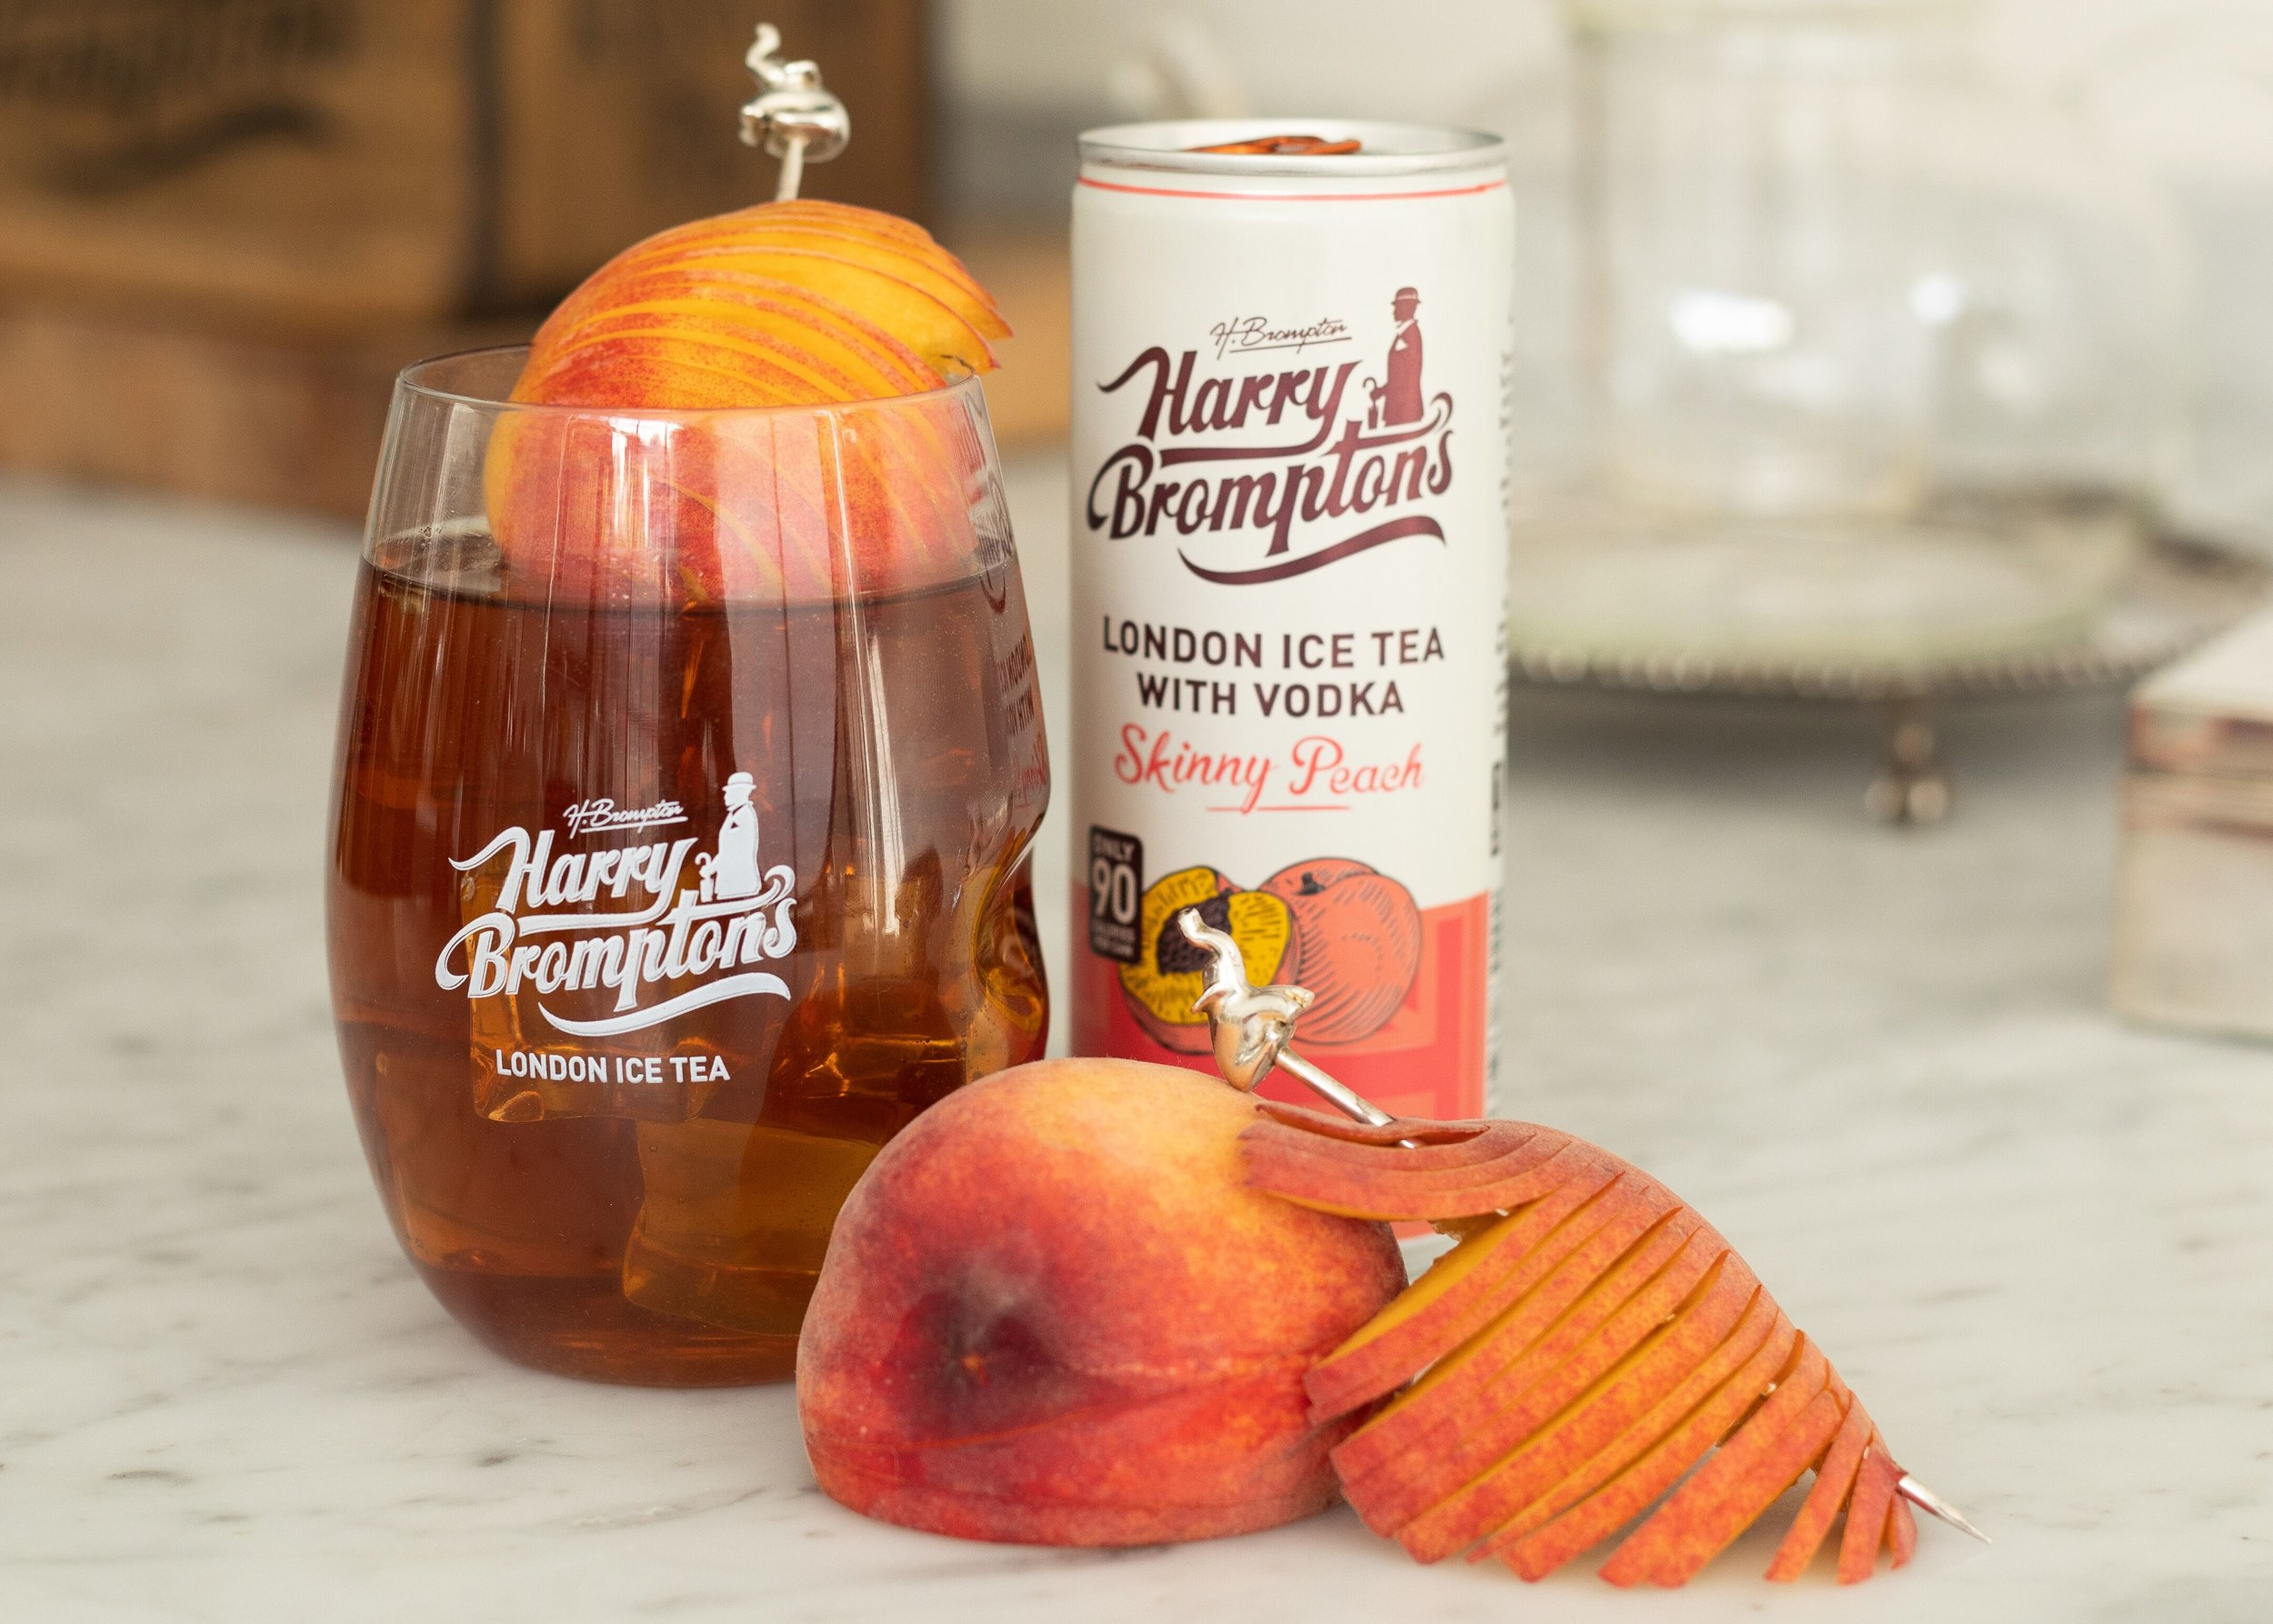 BLACK TEA AND VODKA WITH PEACH - The perfect combination of Harry's Peach Ice tea and Vodka. Lightly sparkling and low in sugar and calories.